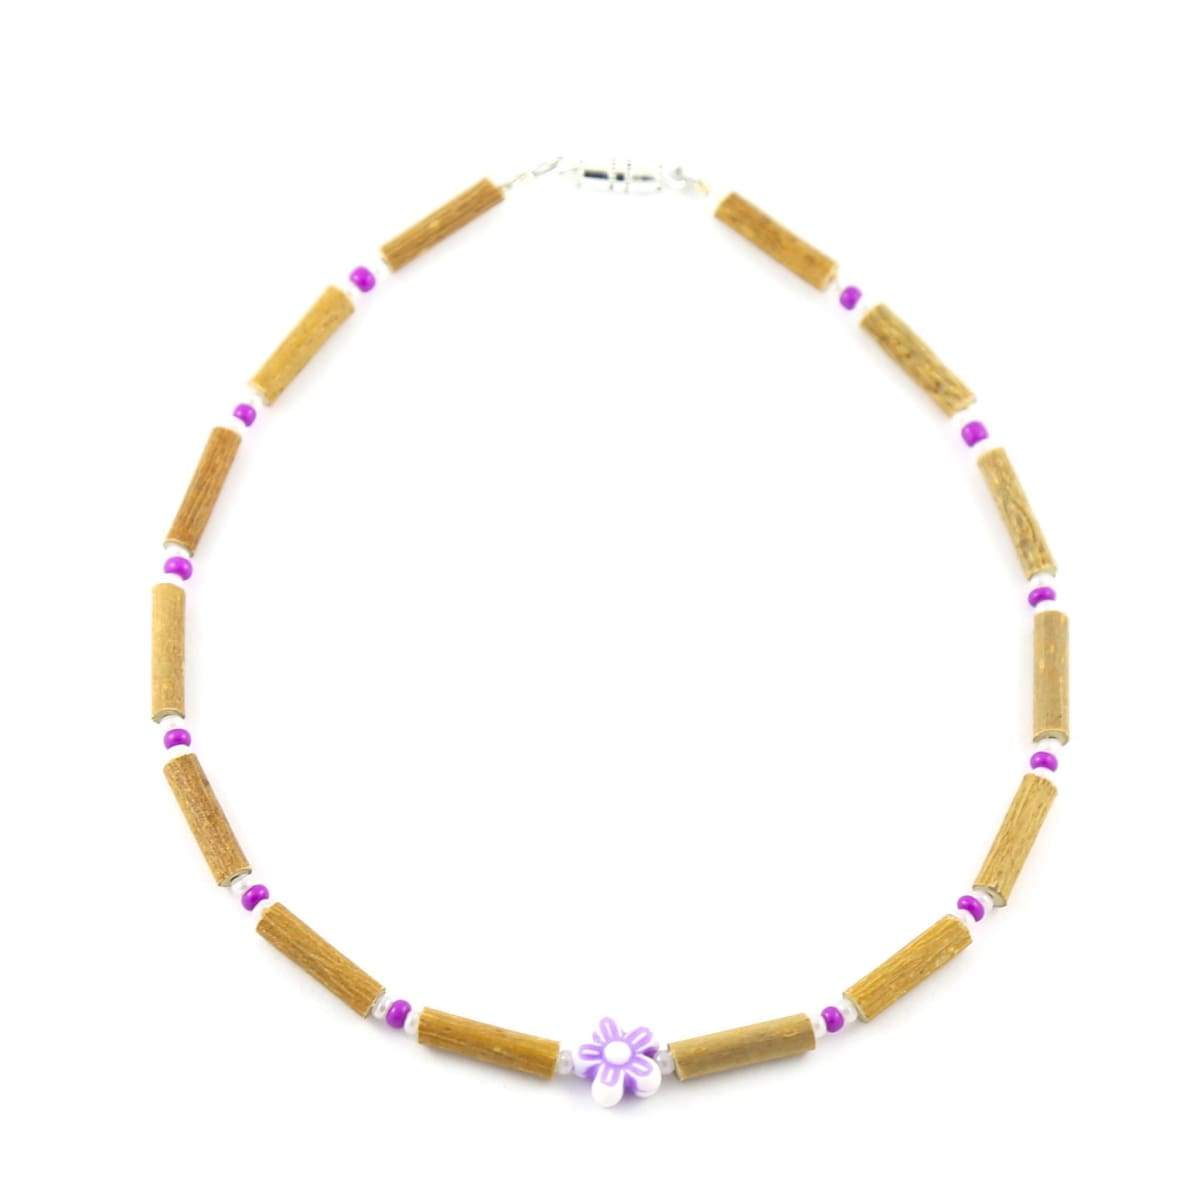 Hazelwood Violet Flower - 11 Necklace - Barrel Twist Clasp - Hazelwood Jewelry